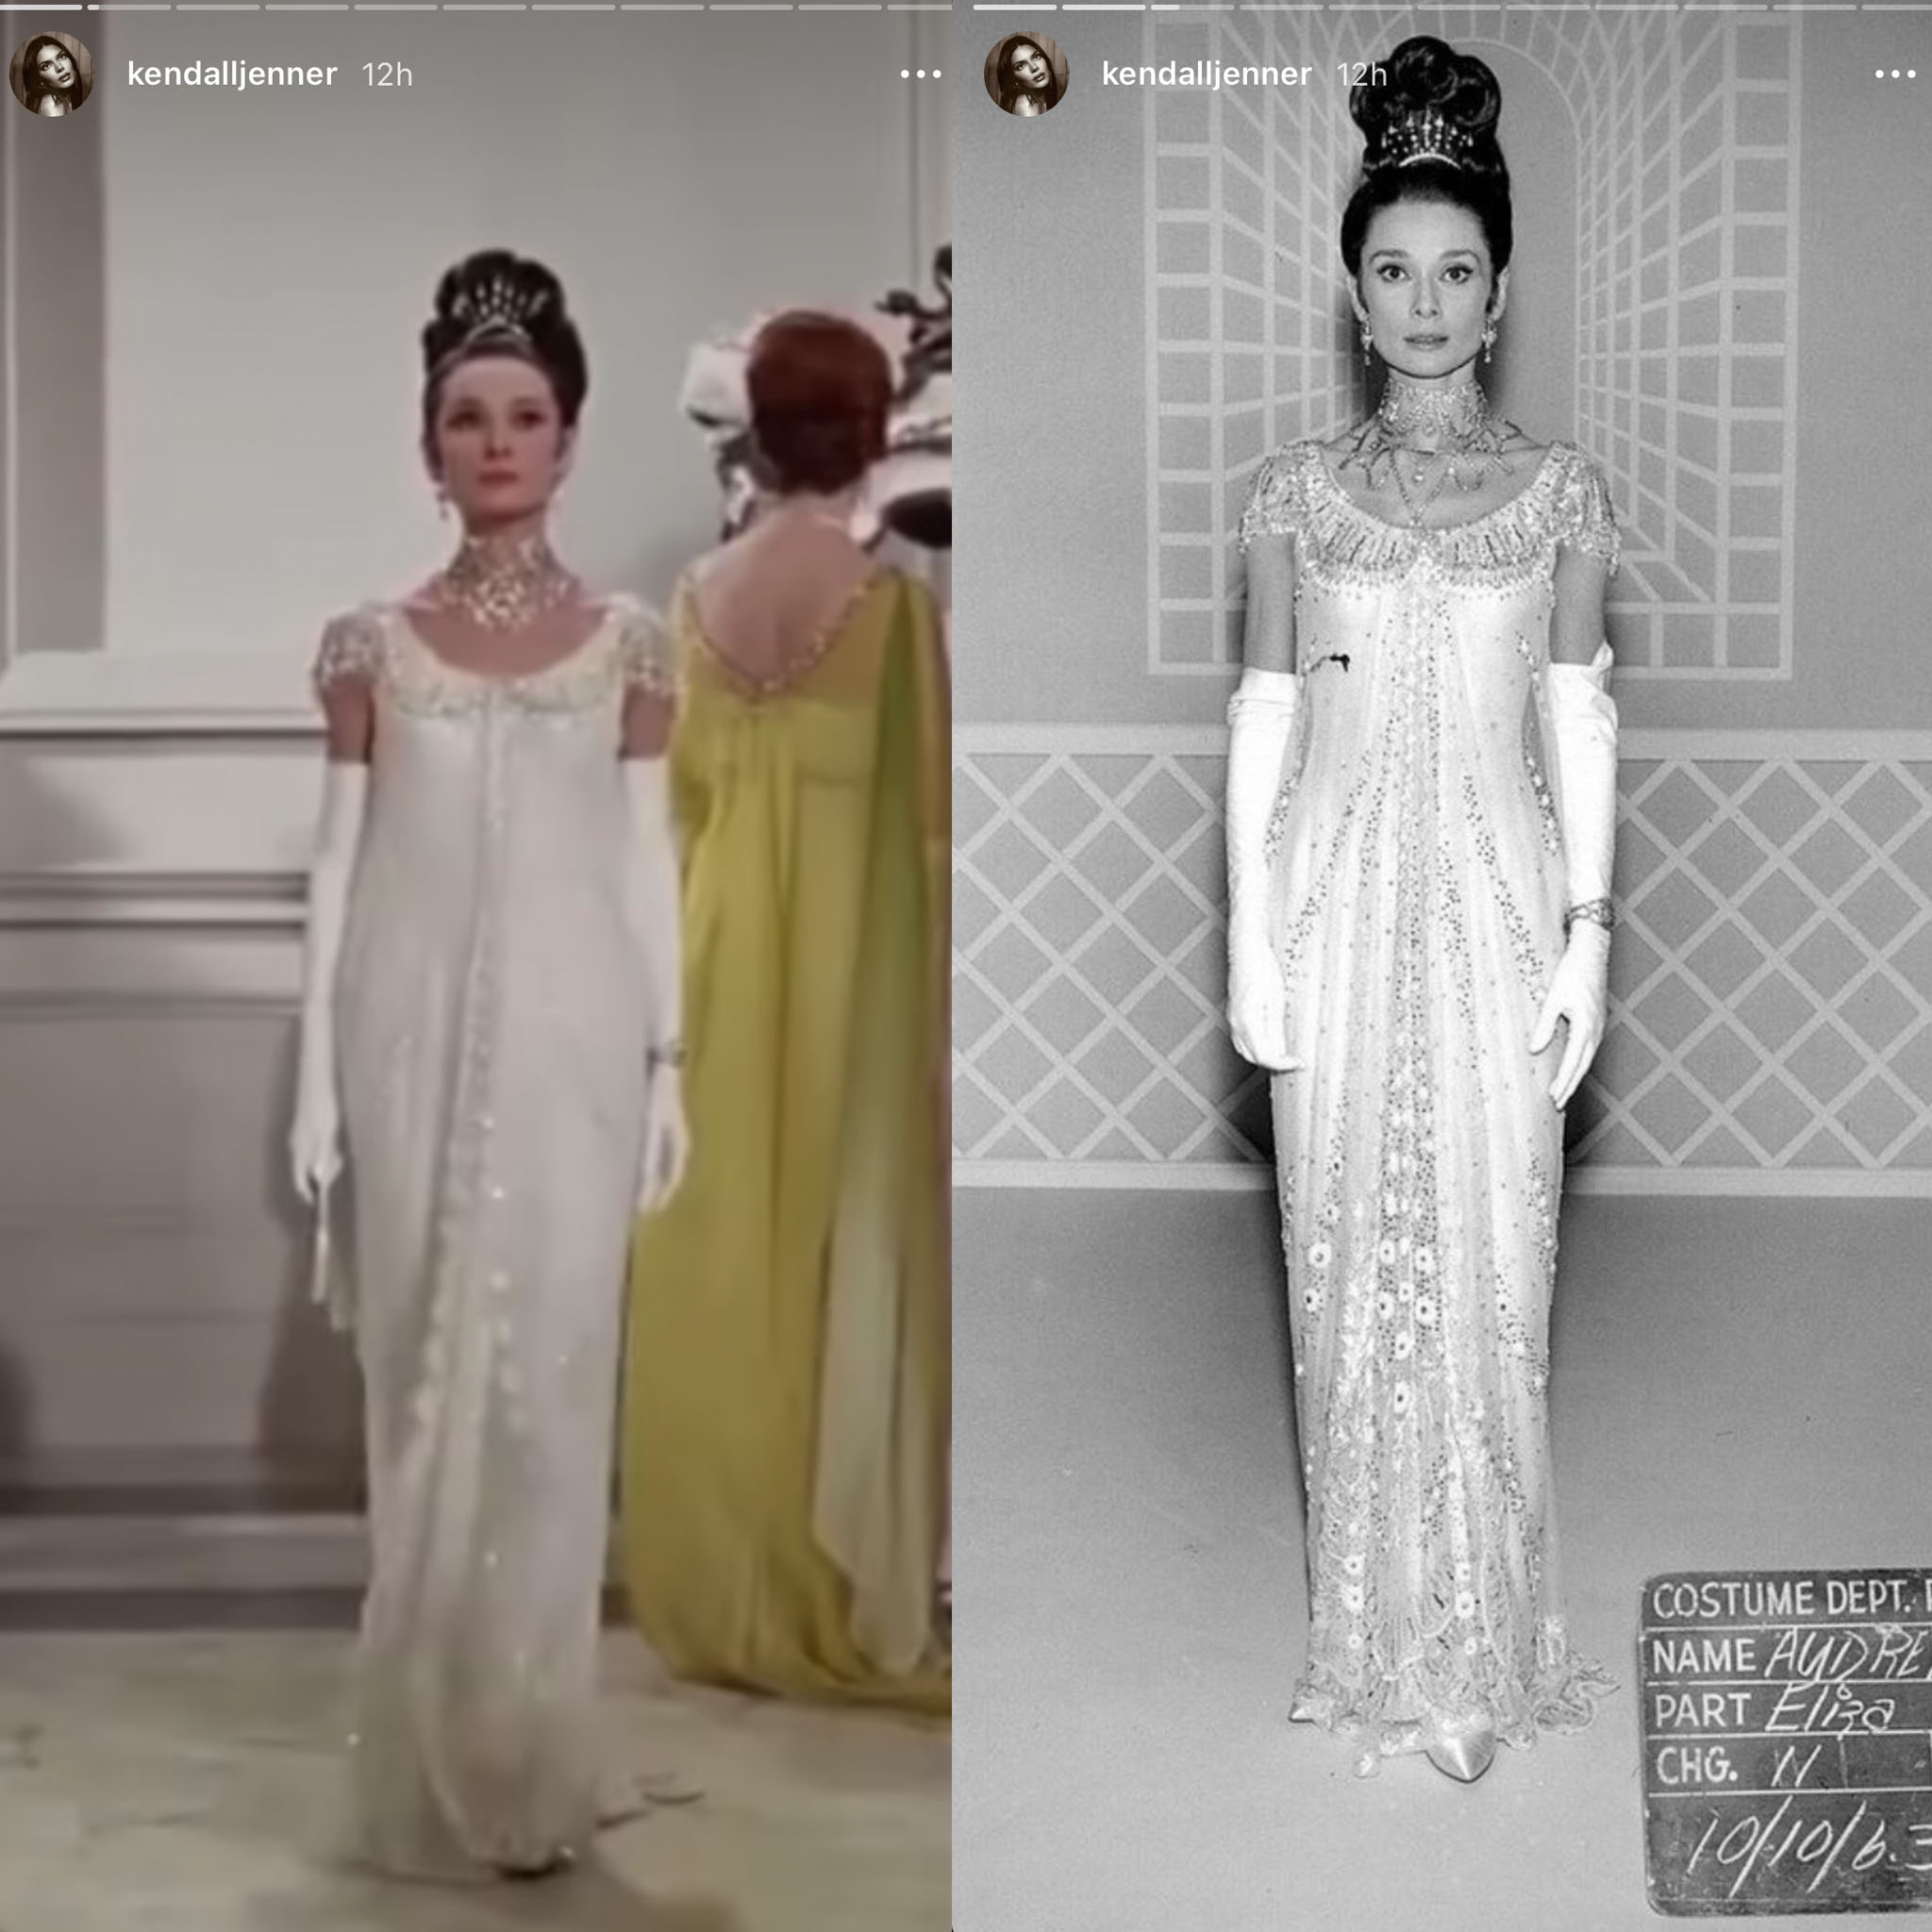 Kendall Jenner shares a clip from My Fair Lady and a photo of Audrey Hepburn in the crystal-embellished Givenchy dress